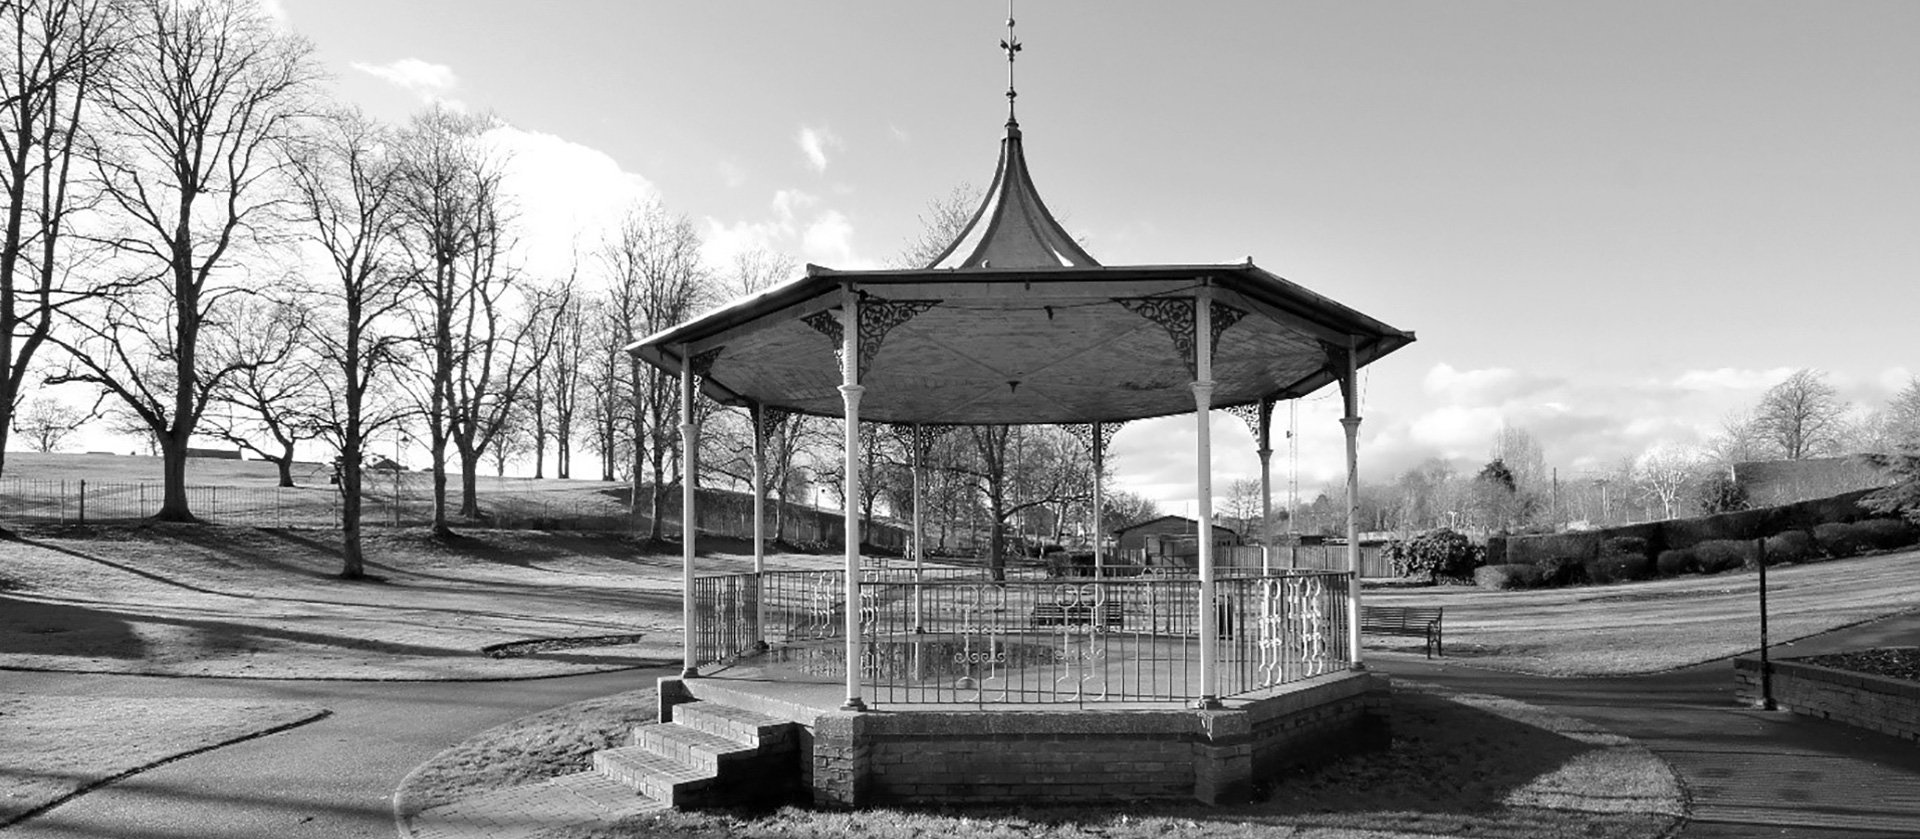 Band Stand